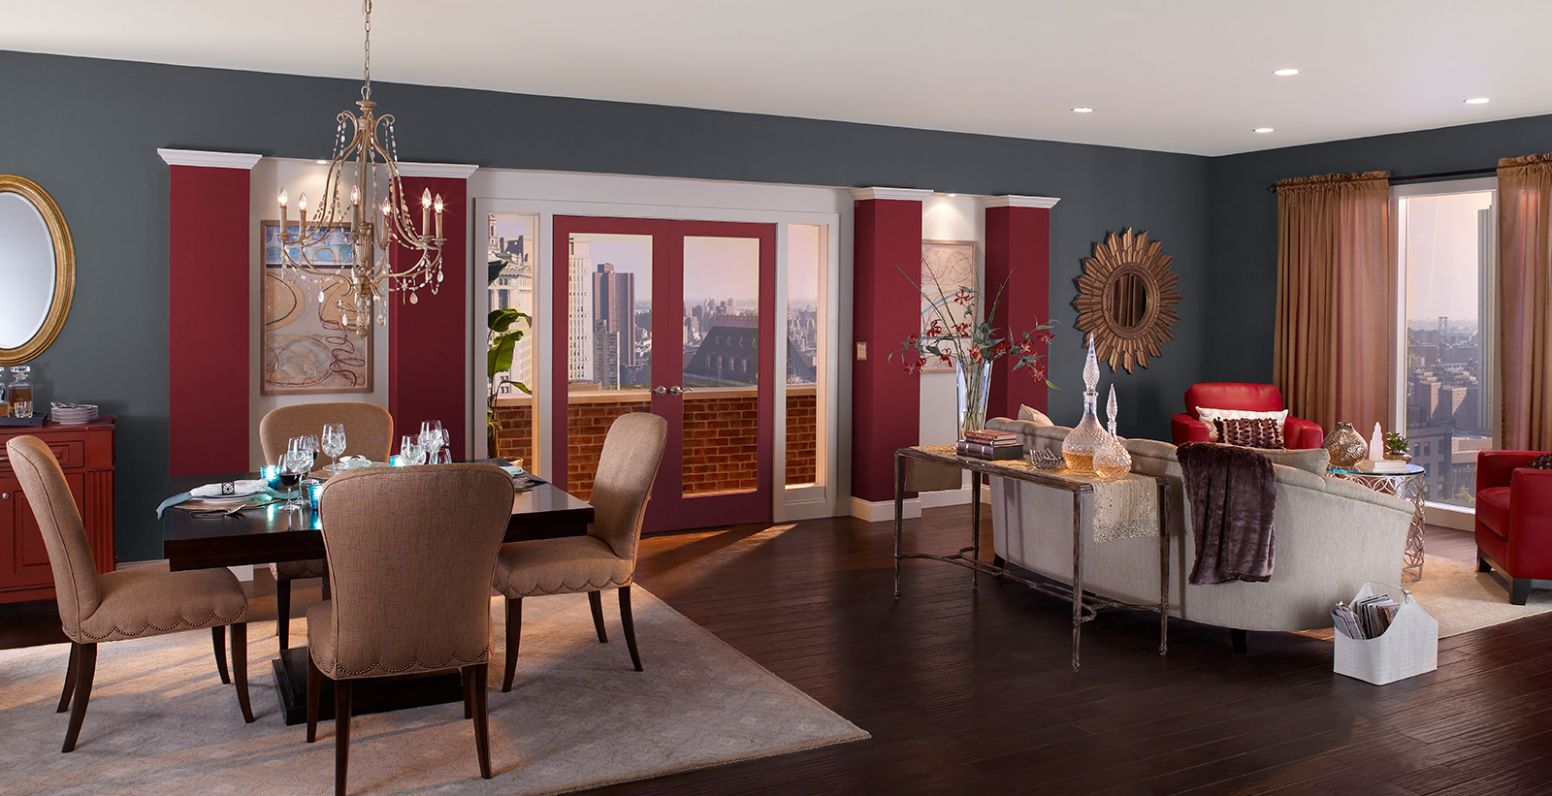 Red Dining Room Ideas and Inspirational Paint Colors | Behr - dining room ideas red